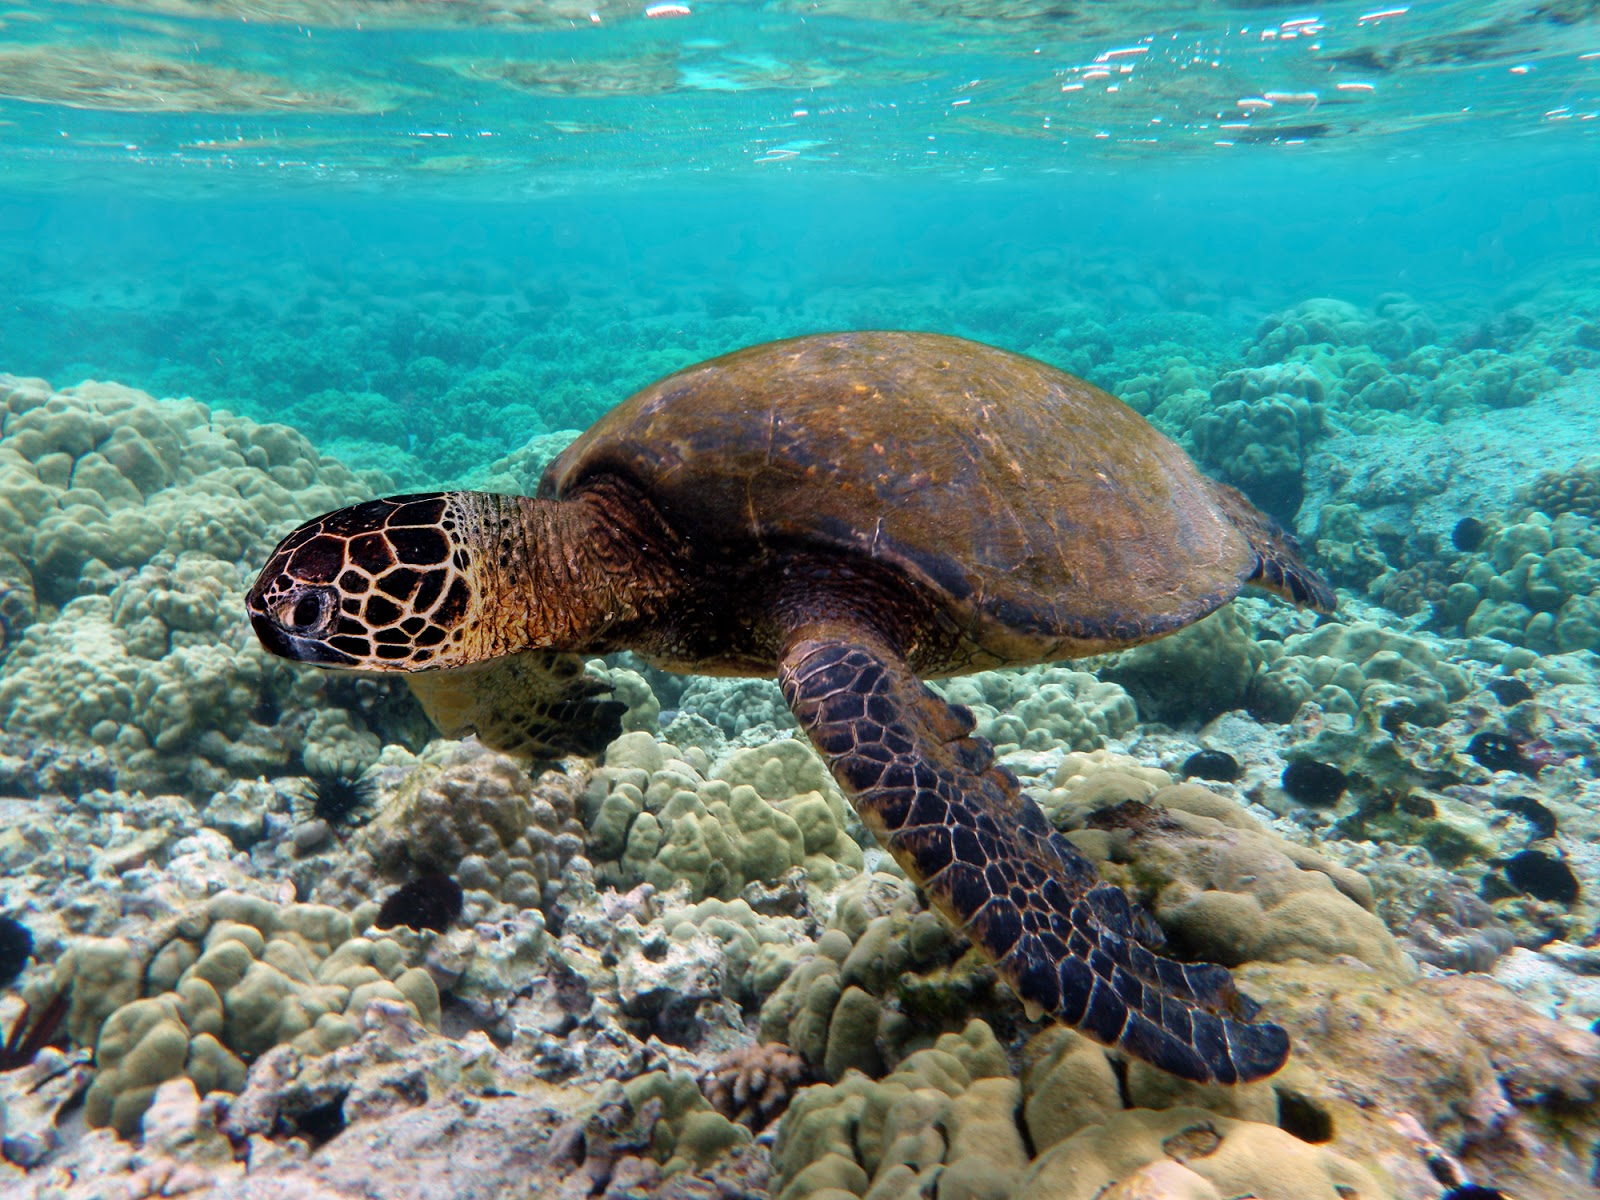 Reptiles: Green turtle swimming over coral reefs in Kona